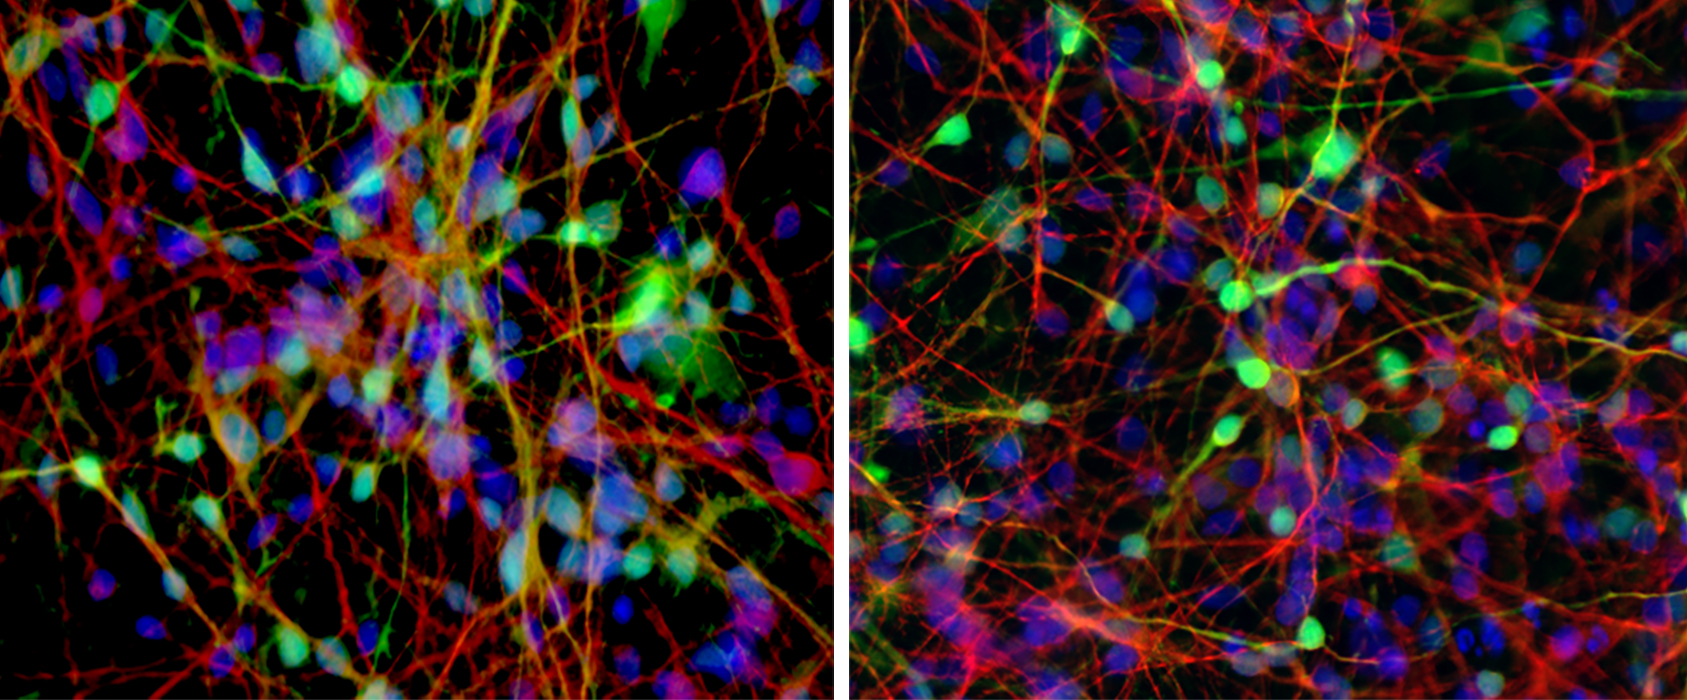 Neurons derived from bipolar patients